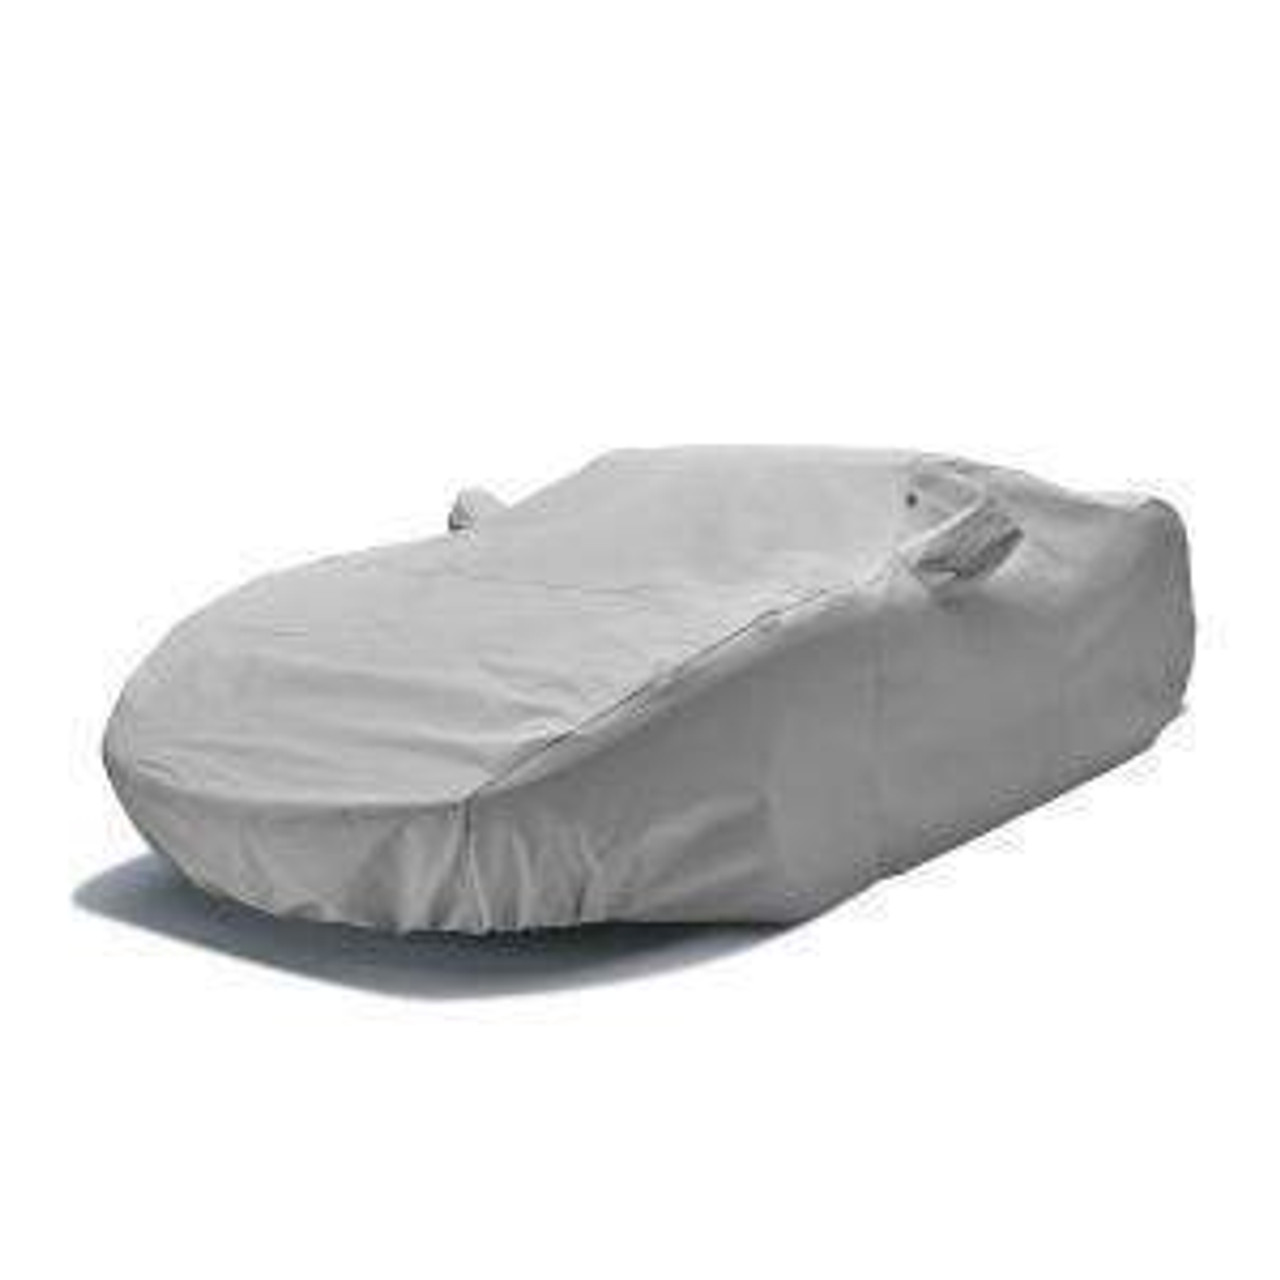 2017-on 124 Spider Covercraft Evolution Series Exact Fit Car Cover